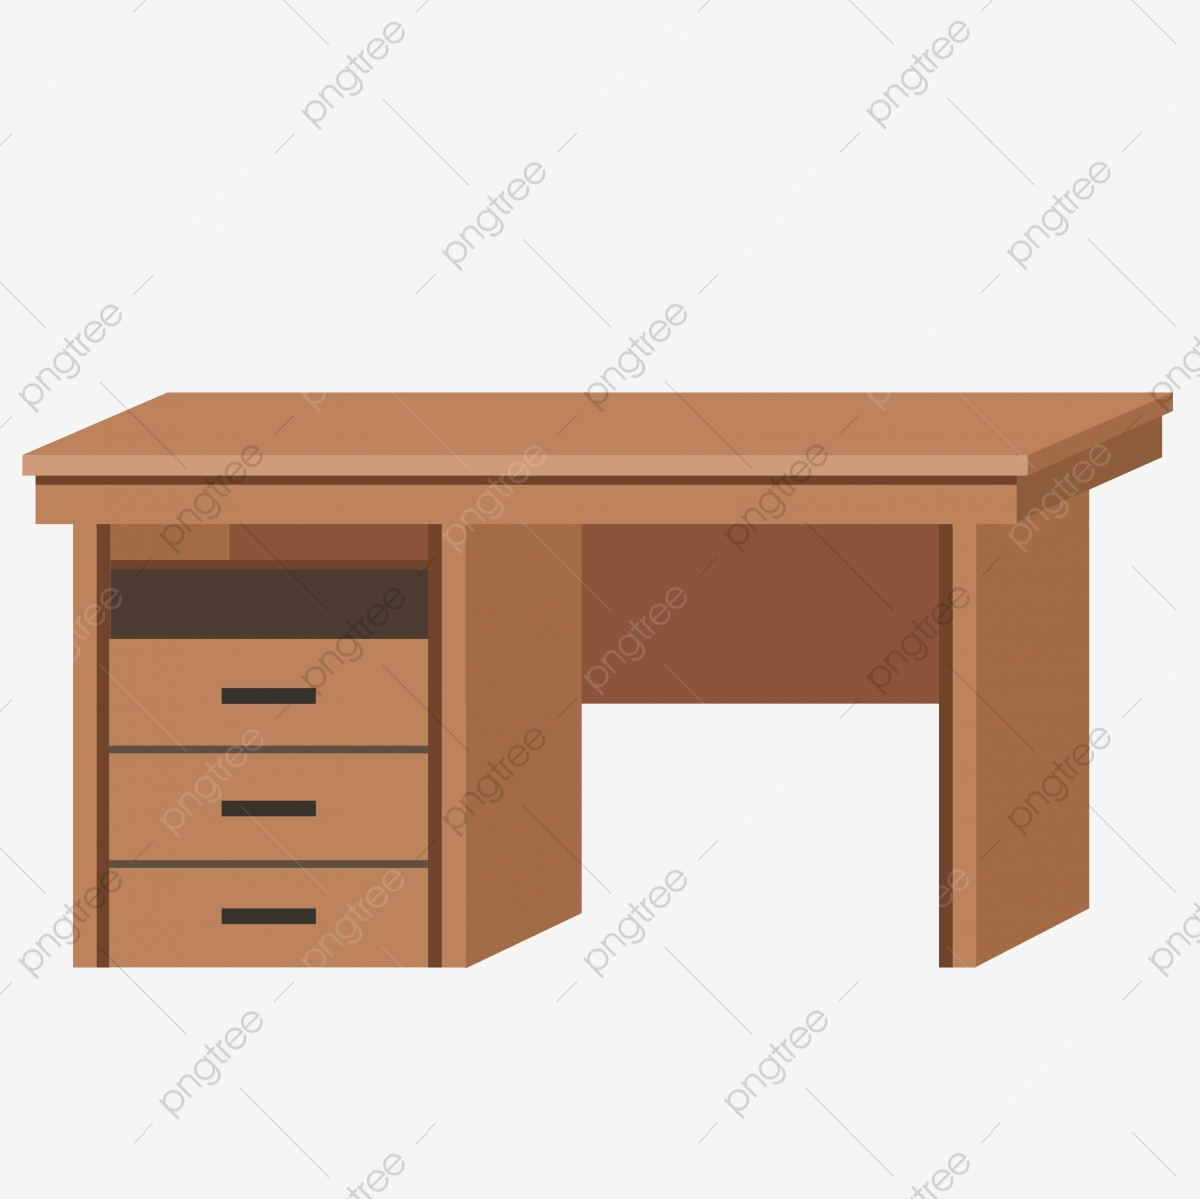 Brown Computer Desk Cartoon Table Cabinet Illustration Table Illustration Brown Cabinet Small Cabinet Small Table Png Transparent Clipart Image And Psd File For Free Download